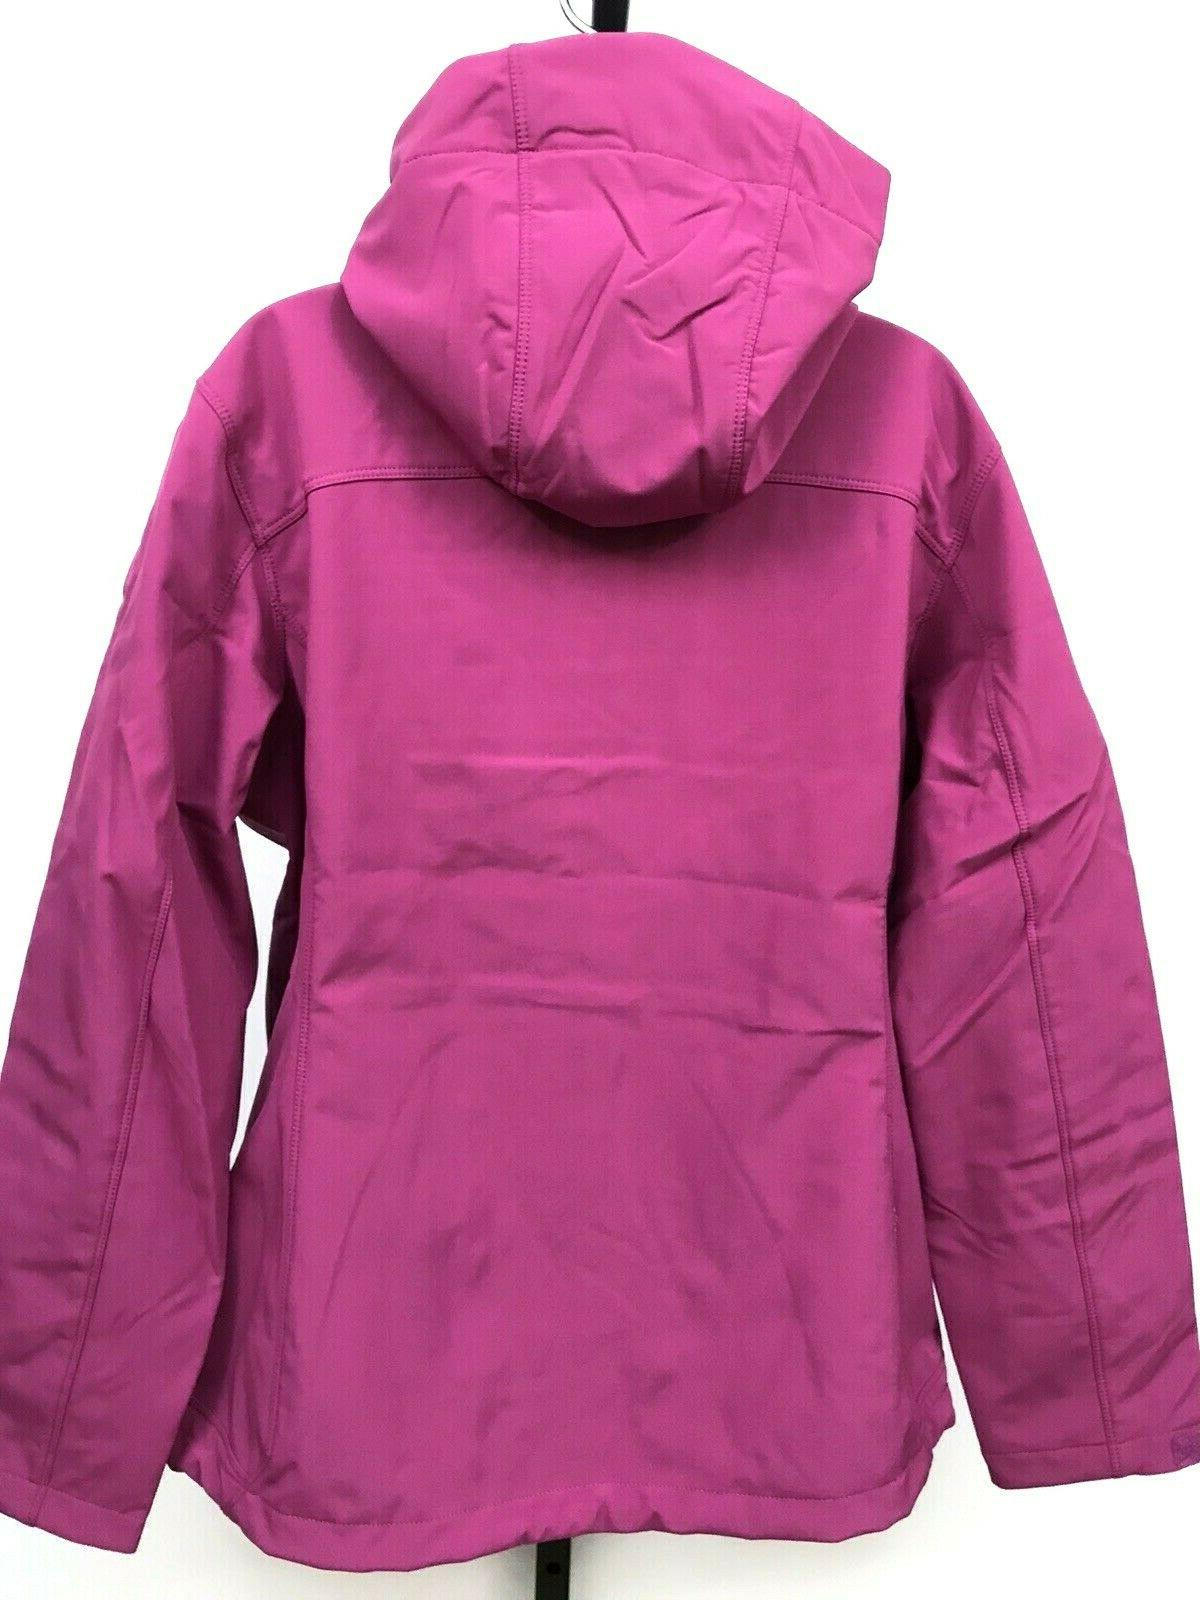 White Womens Jacket Waterproof Hooded Softshell Large $90 Stretch